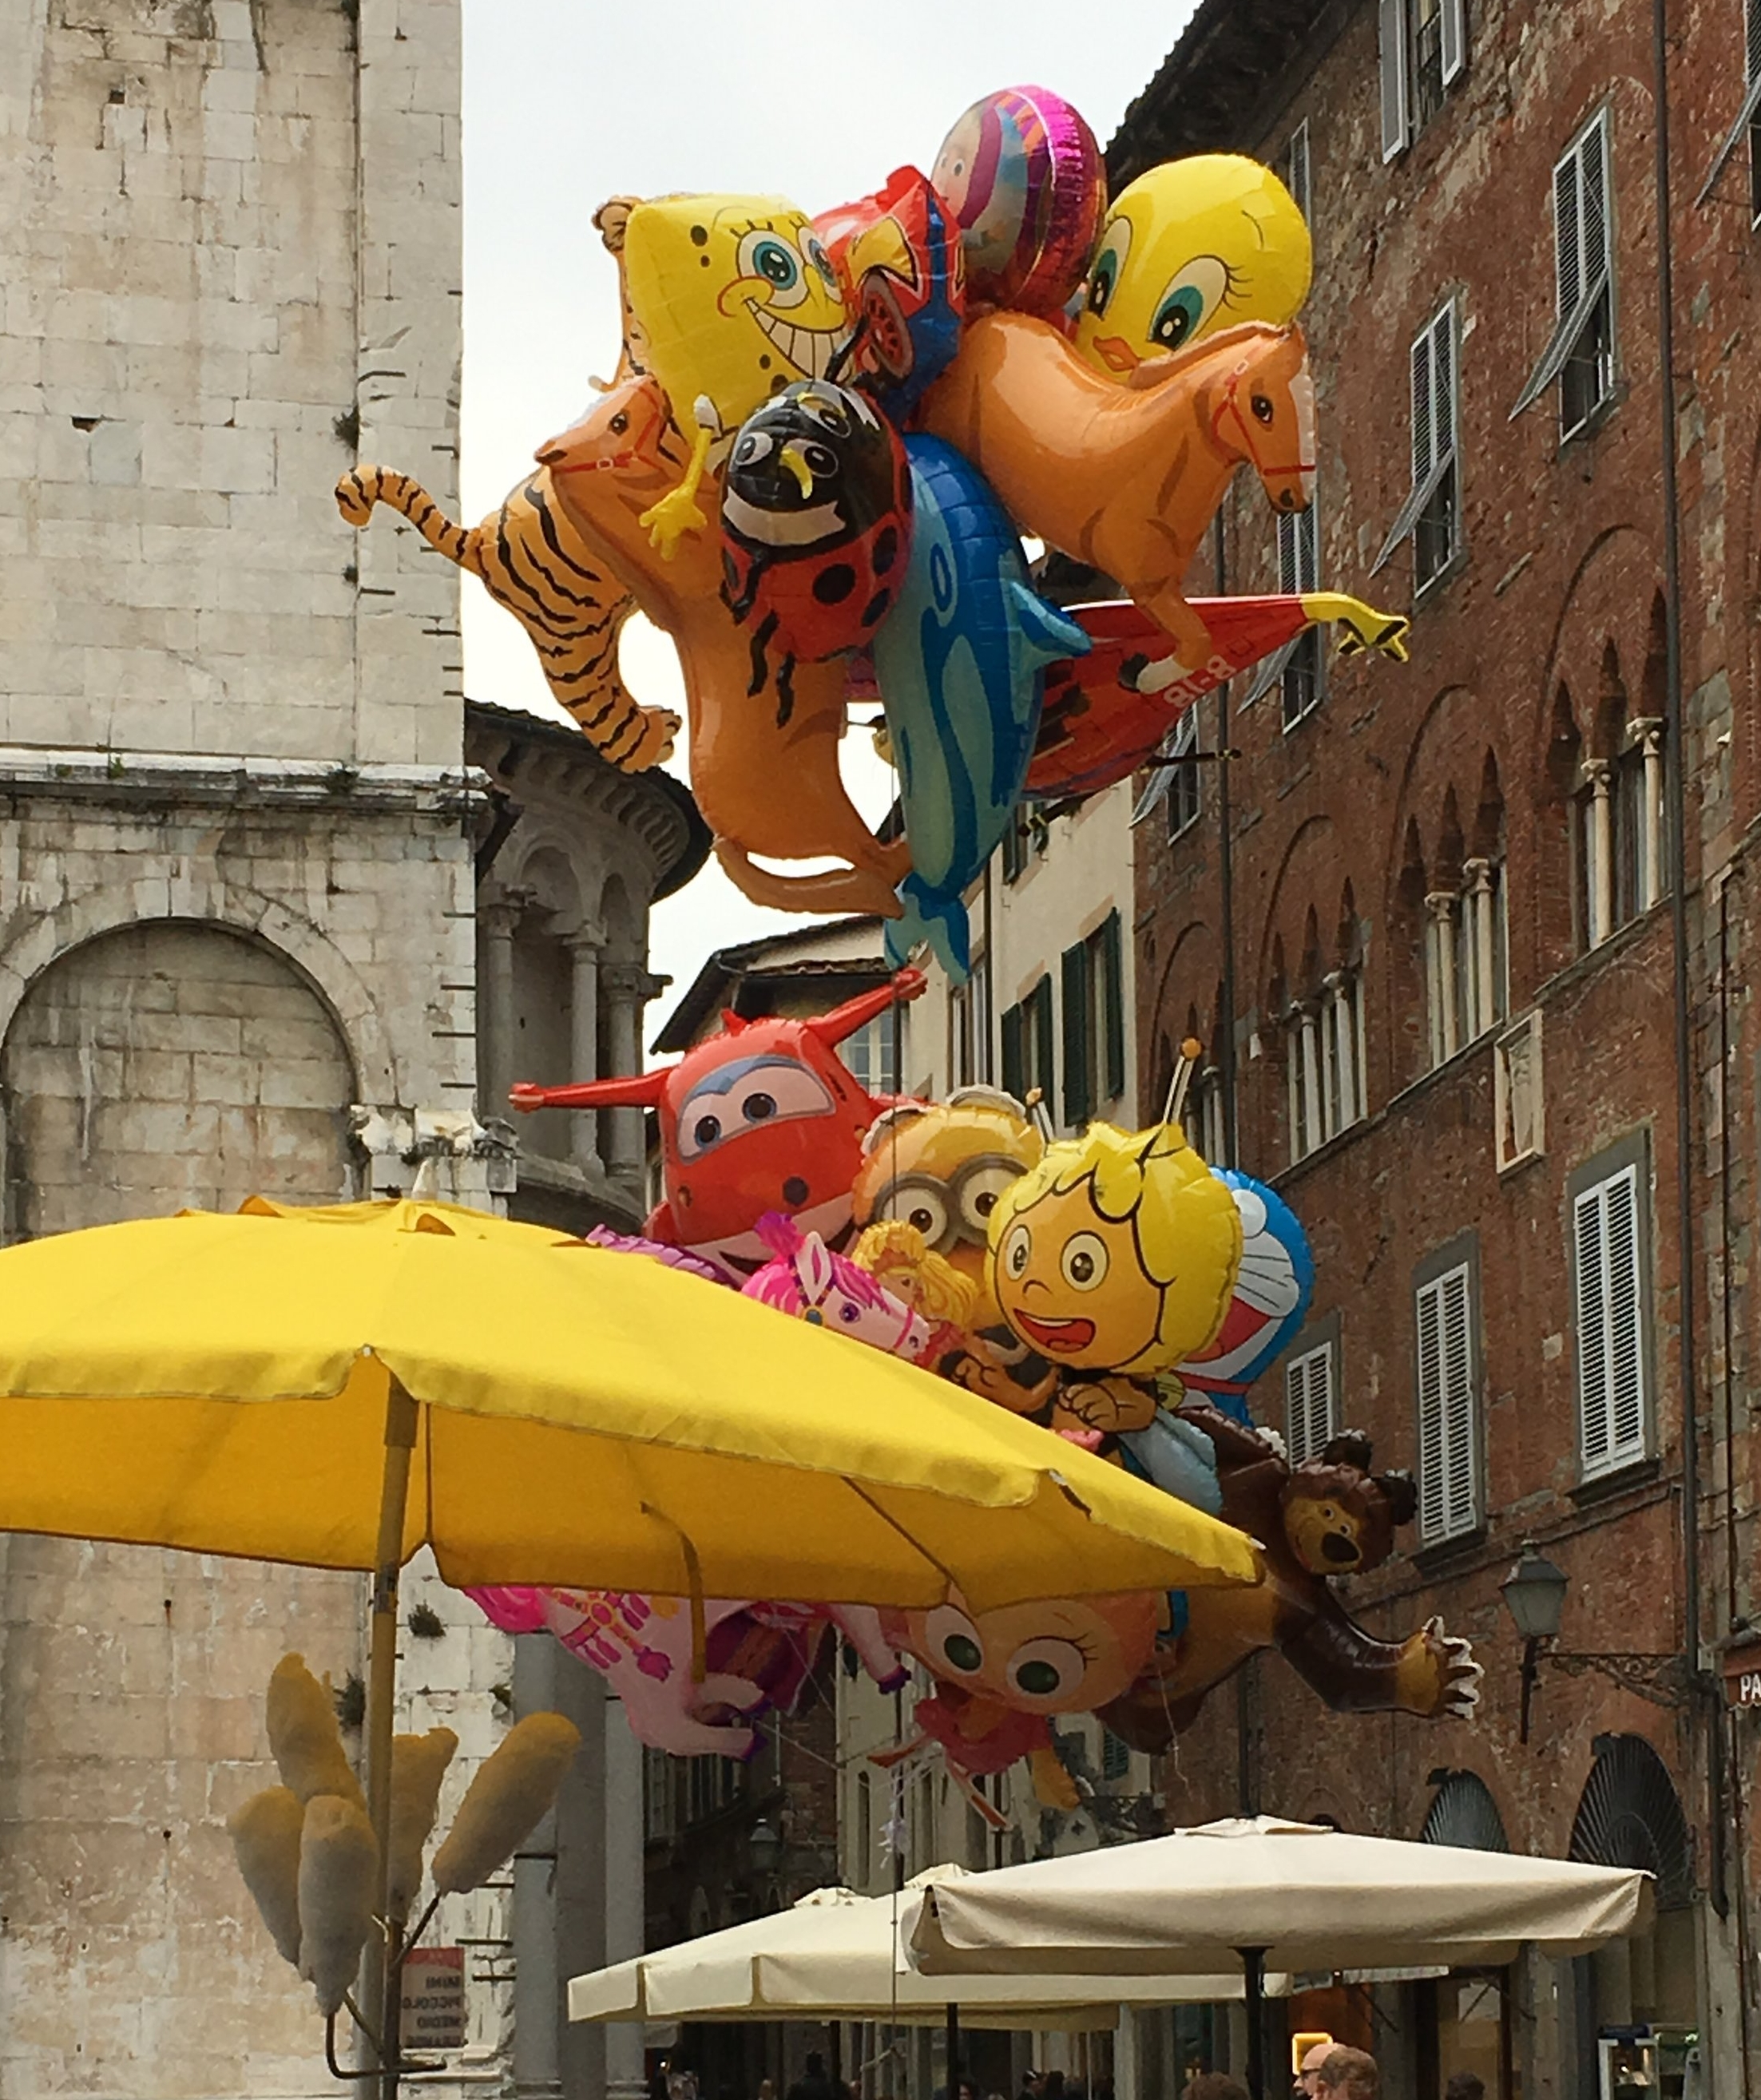 Colorful balloons for sale in Piazza San Michele.